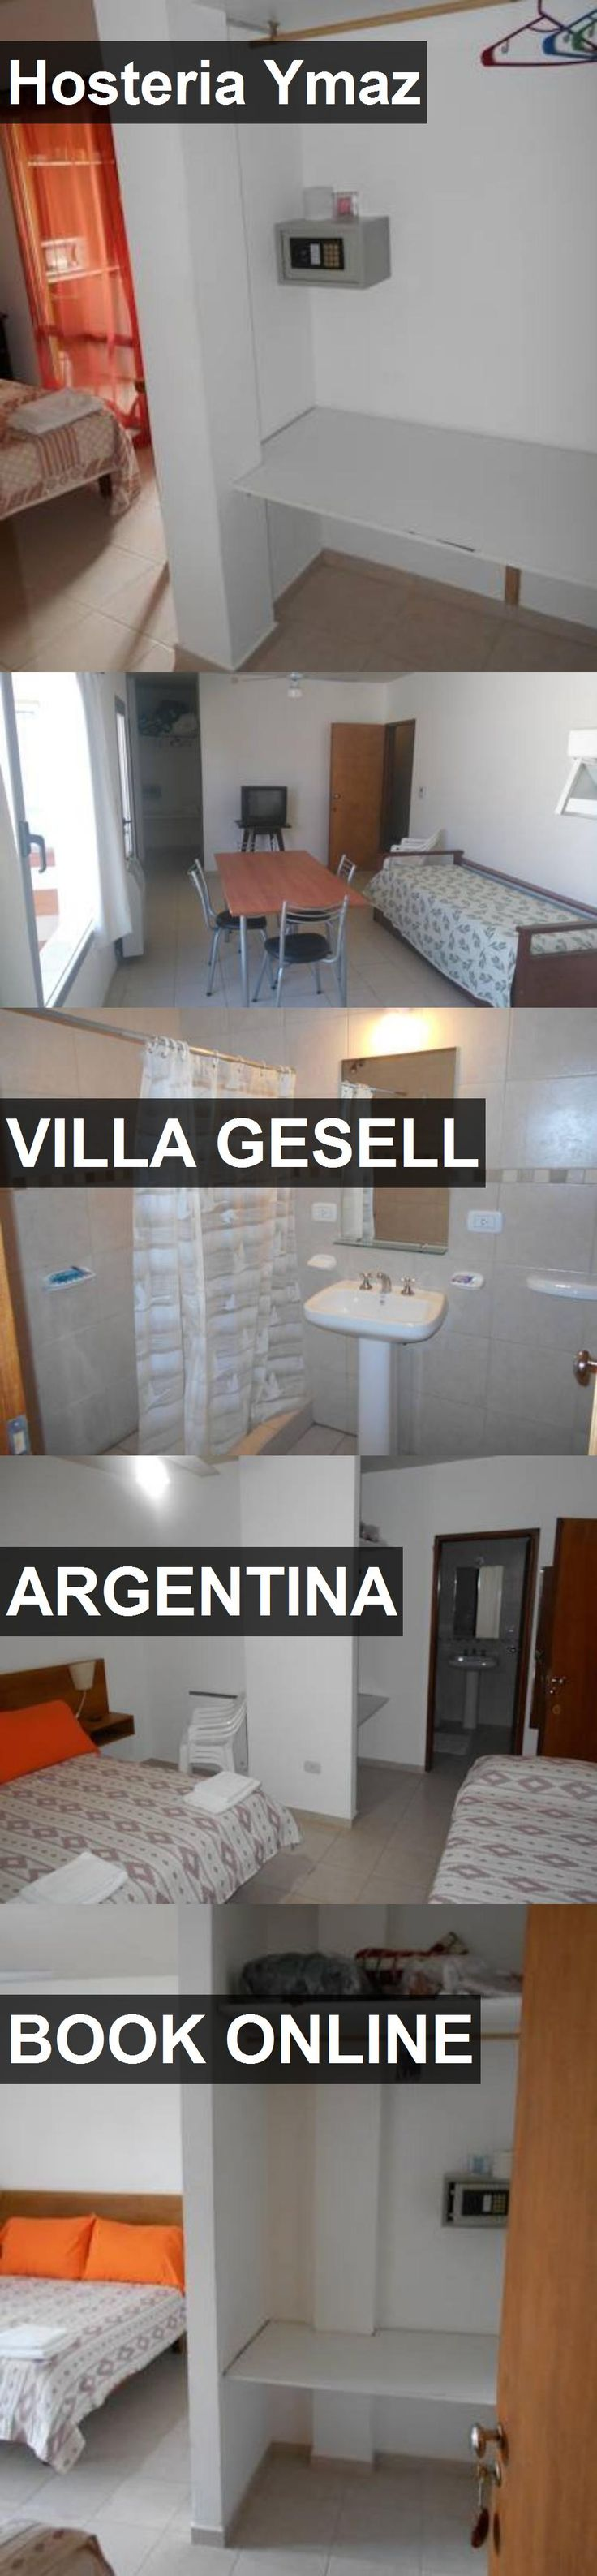 Hotel Hosteria Ymaz in Villa Gesell, Argentina. For more information, photos, reviews and best prices please follow the link. #Argentina #VillaGesell #travel #vacation #hotel